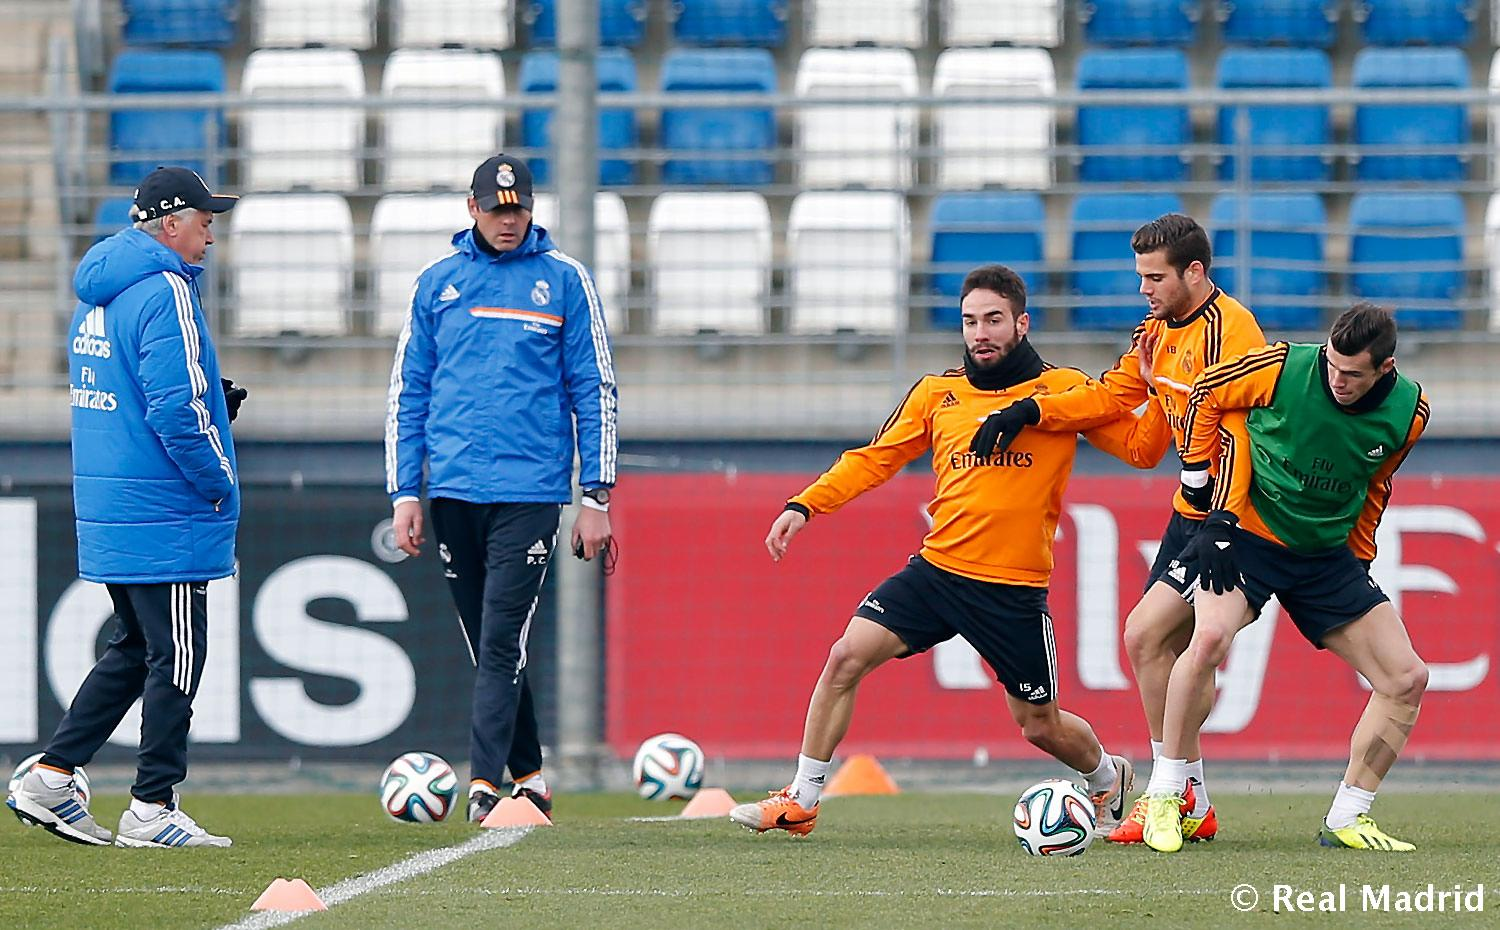 Real Madrid - Entrenamiento - 05-02-2014